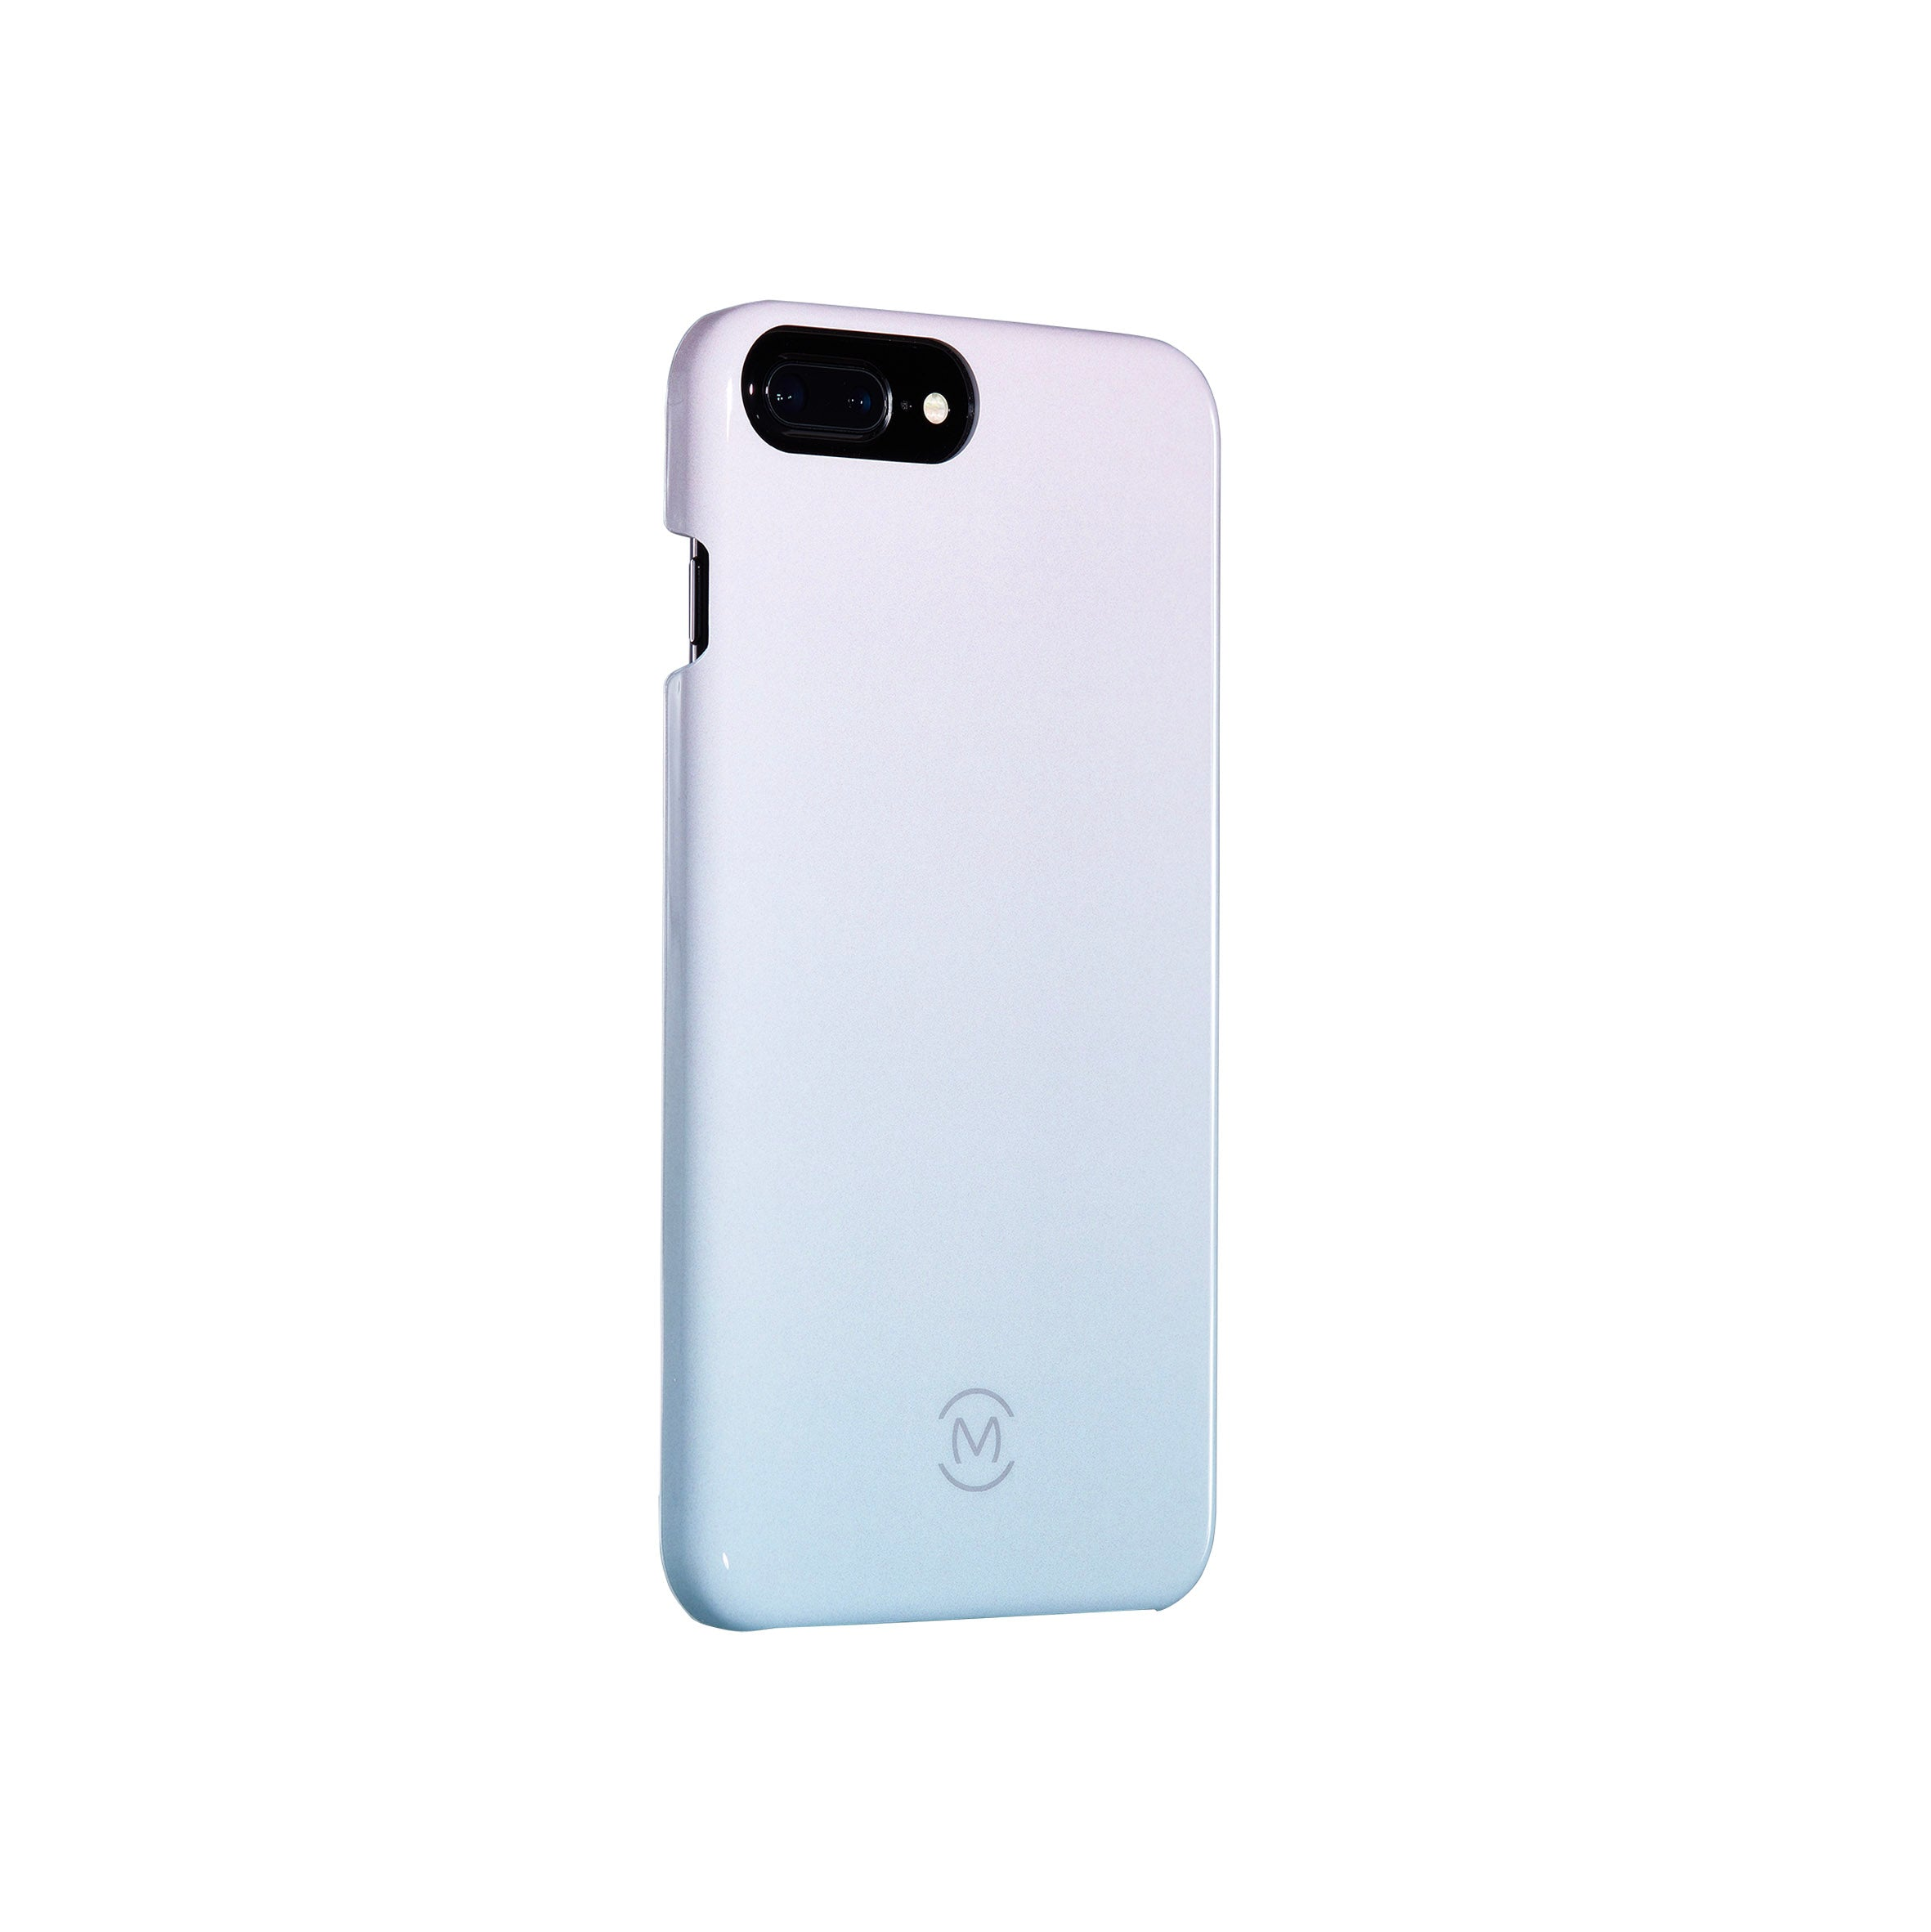 Icy Blue Gradient Sea Ice Recyclable Phone Case by Movement for iPhone 8 Plus, iPhone 7 Plus, iPhone 6s Plus, and iPhone 6 Plus (Left)